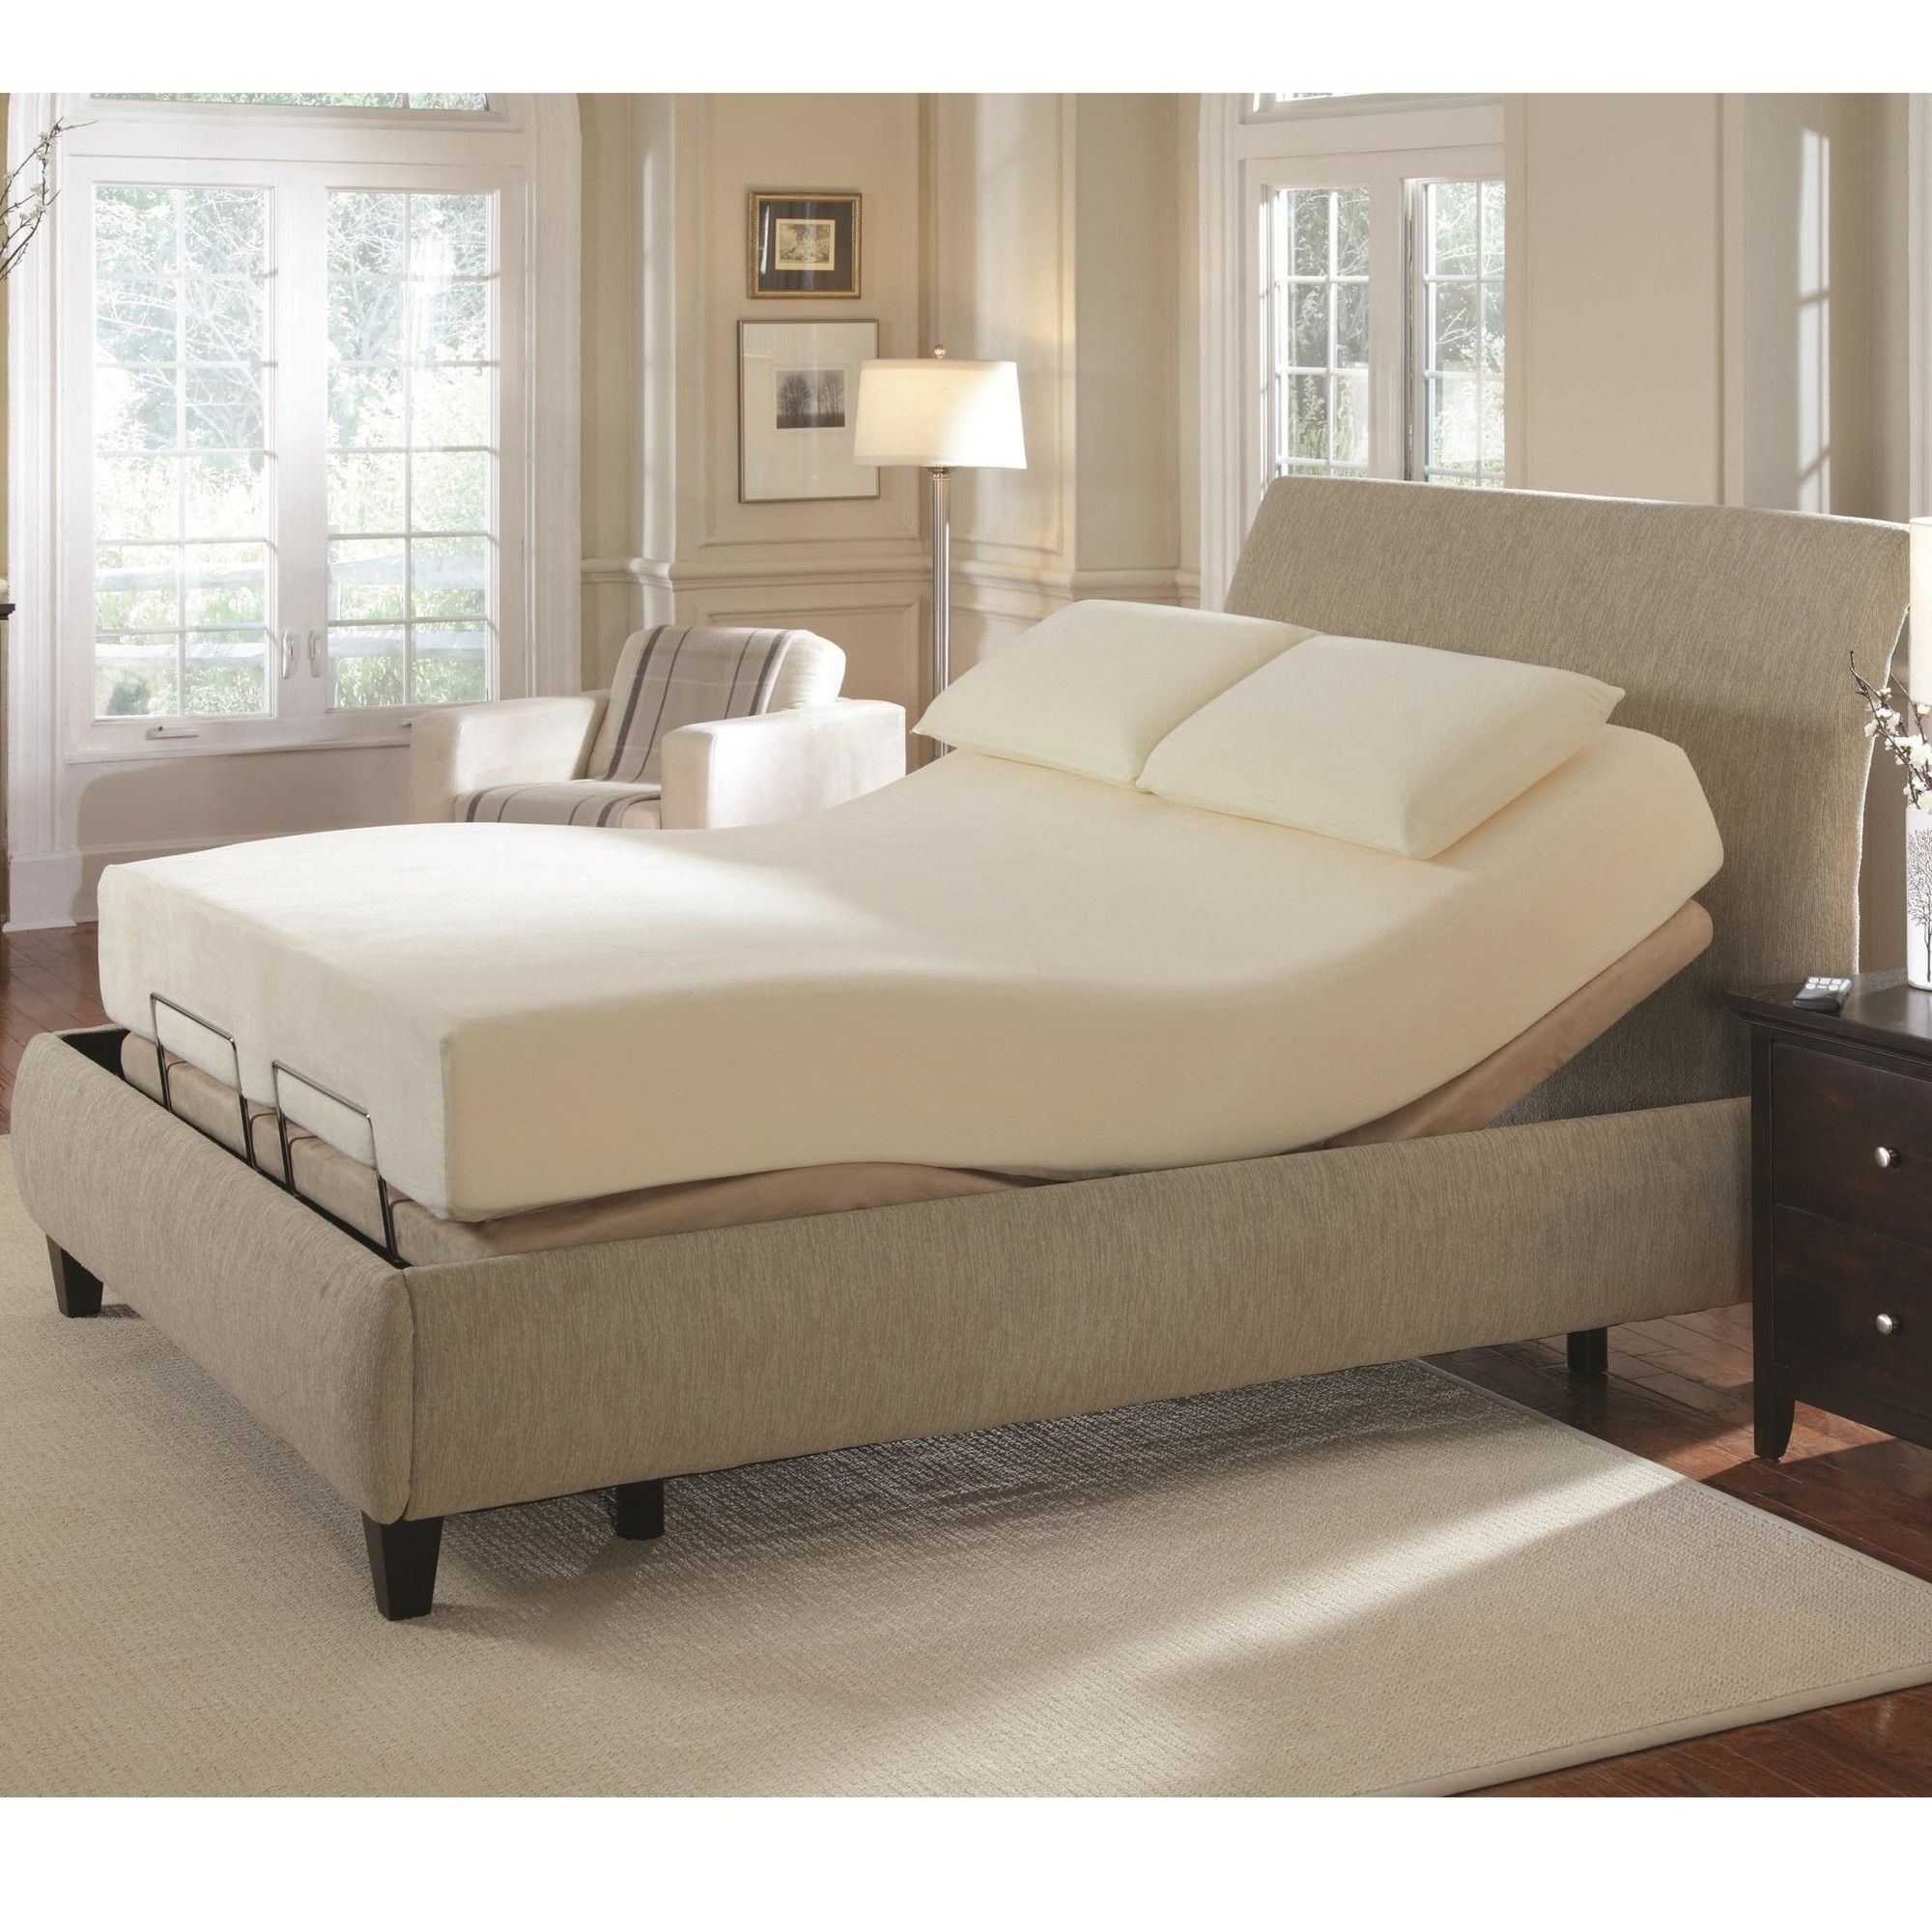 Upholstered Panel Bed Adjustable bed base, Adjustable